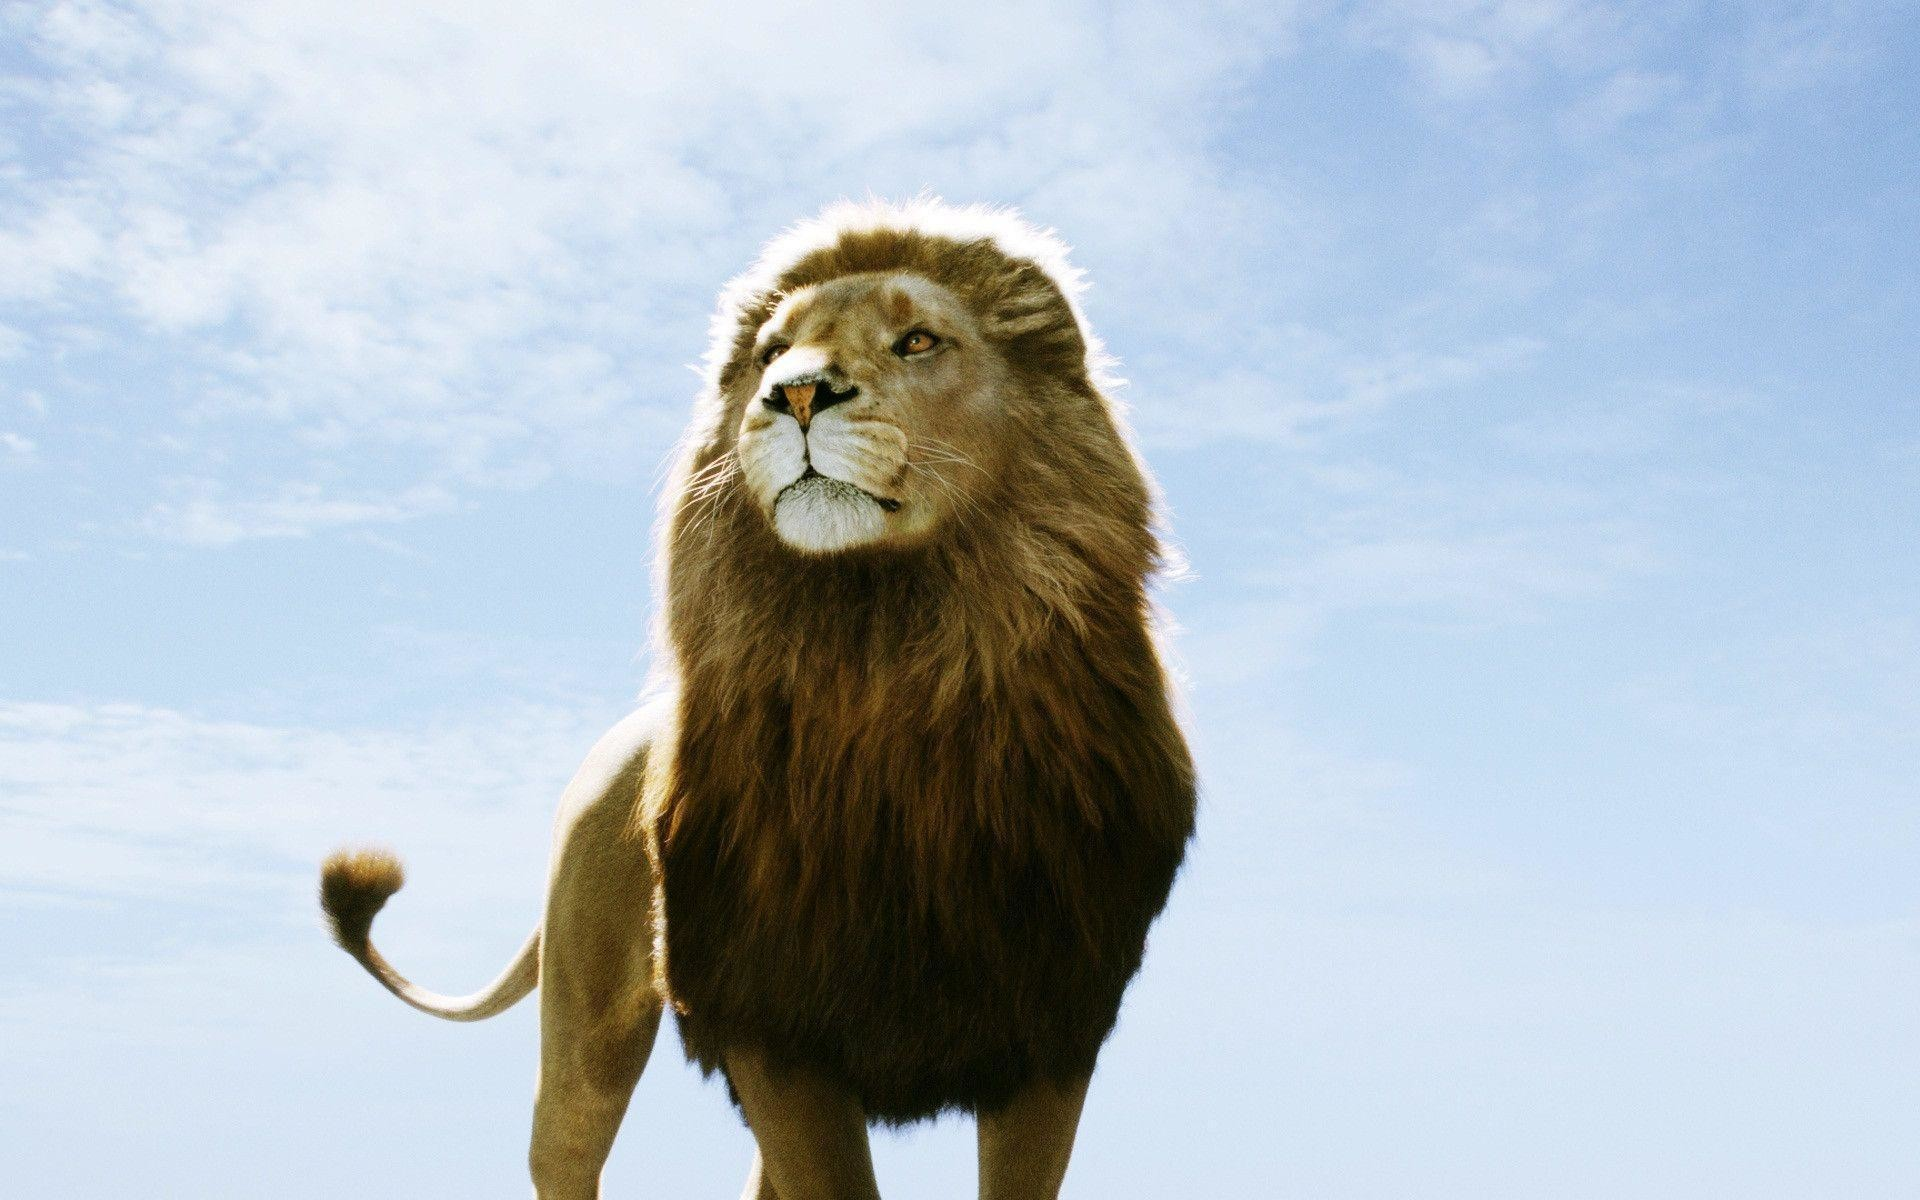 Image – Aslan-Lion-The-Chronicles-of-Narnia-Wallpaper.